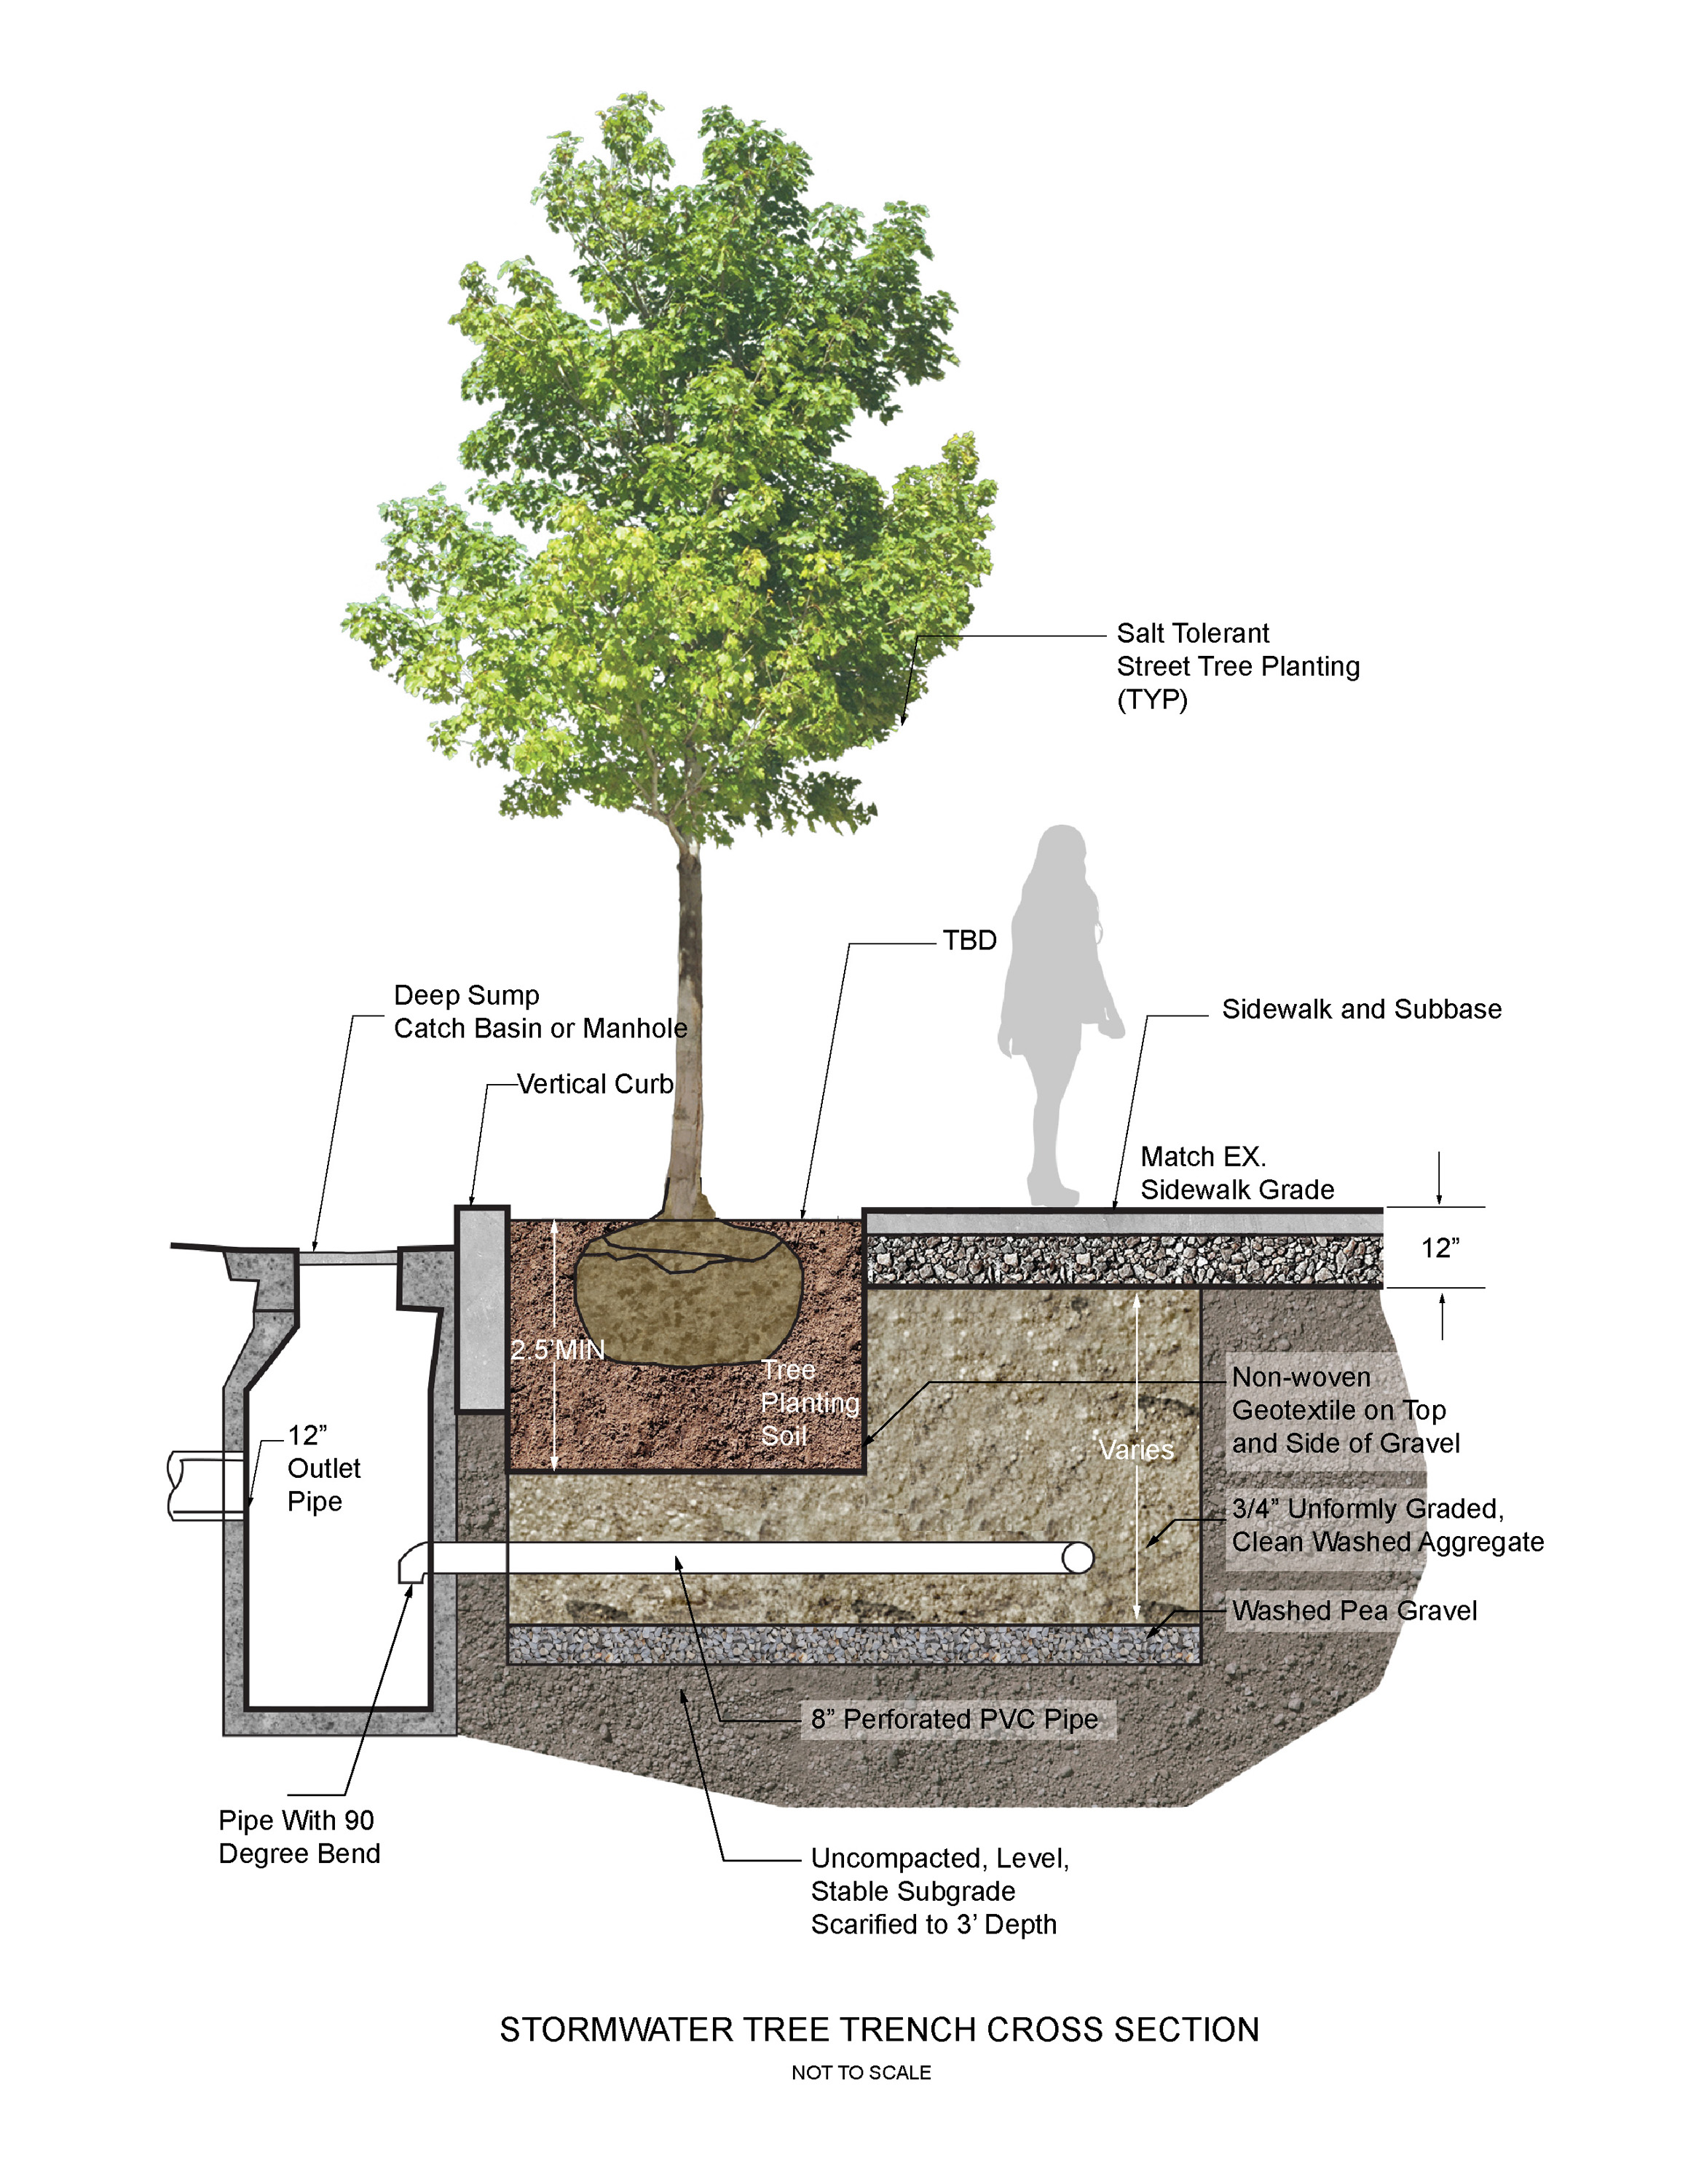 Willard Street - Stormwater Tree Trench Cross Section